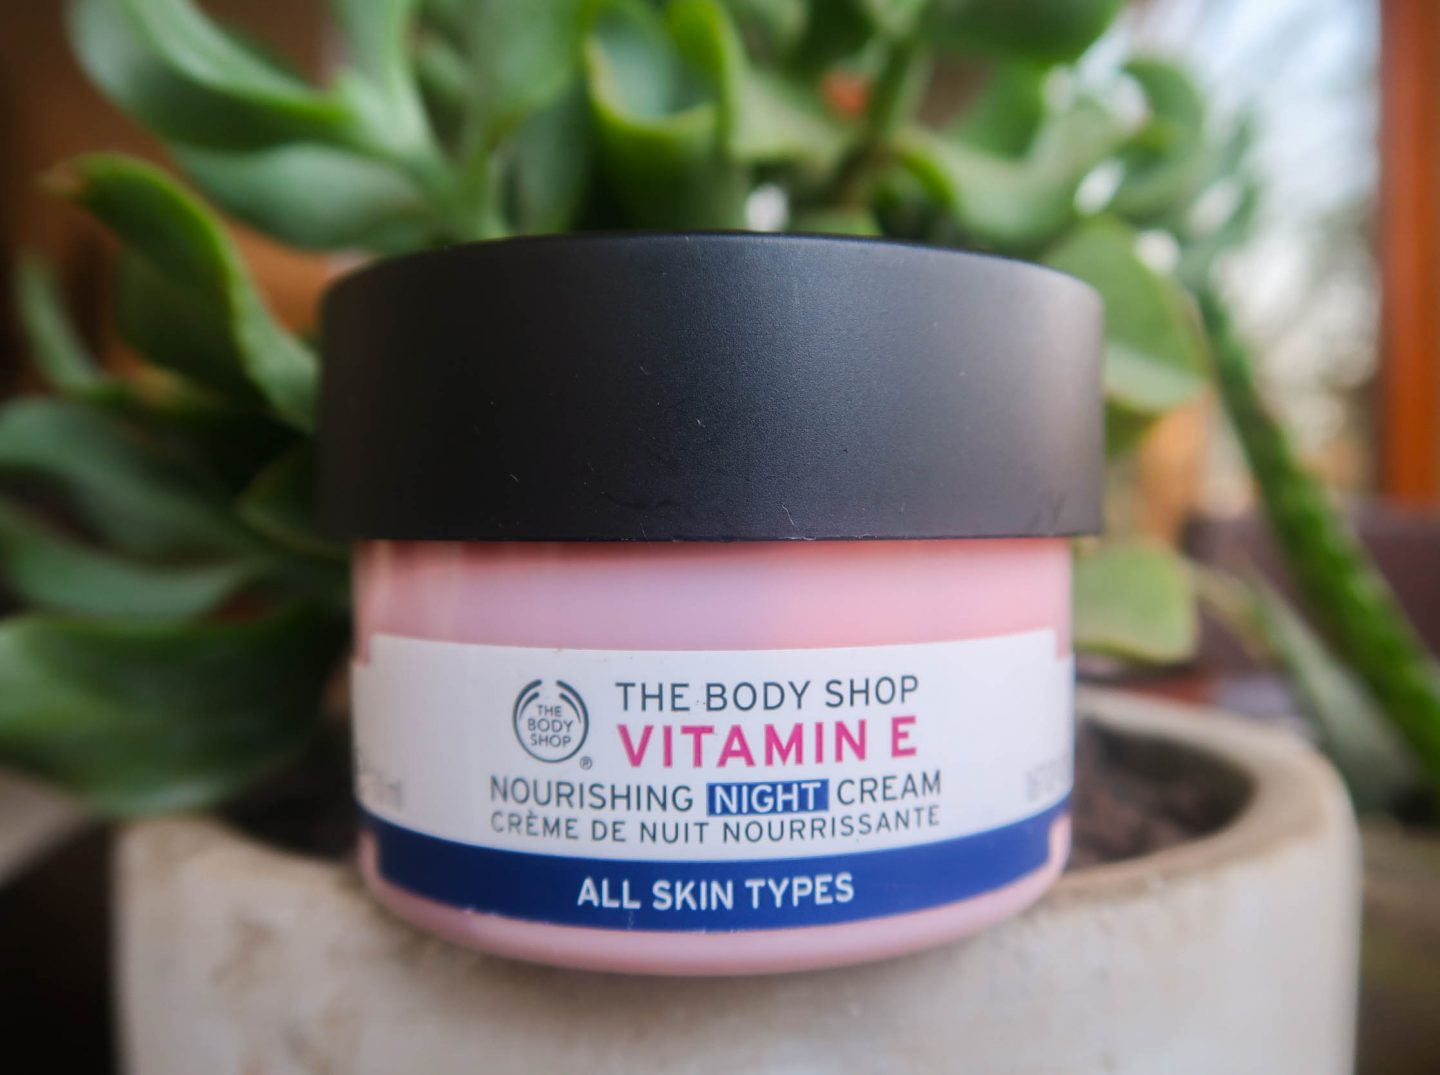 review // vitamin E night cream from The Body Shop